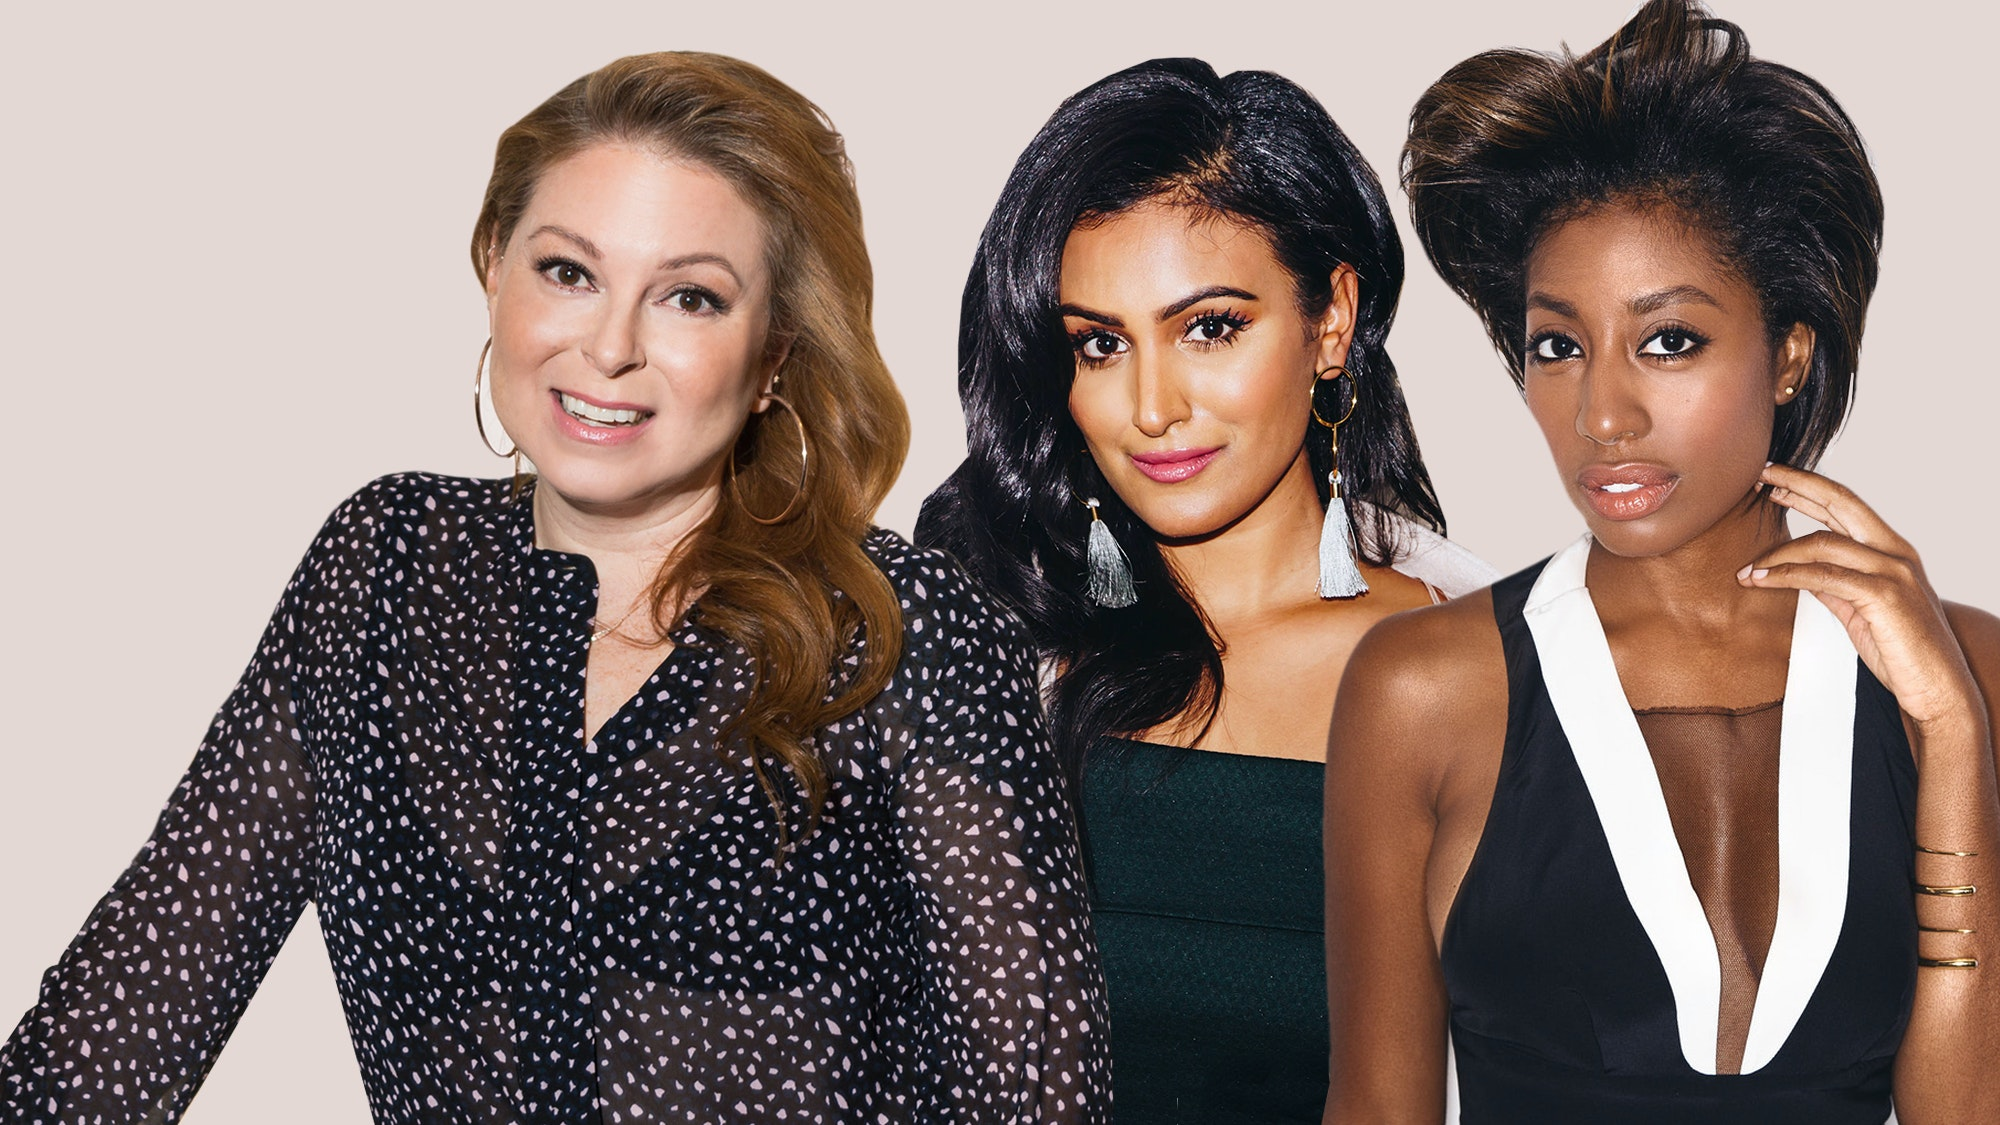 10 Women In Beauty And Health Who Inspire Us This International Women's Day